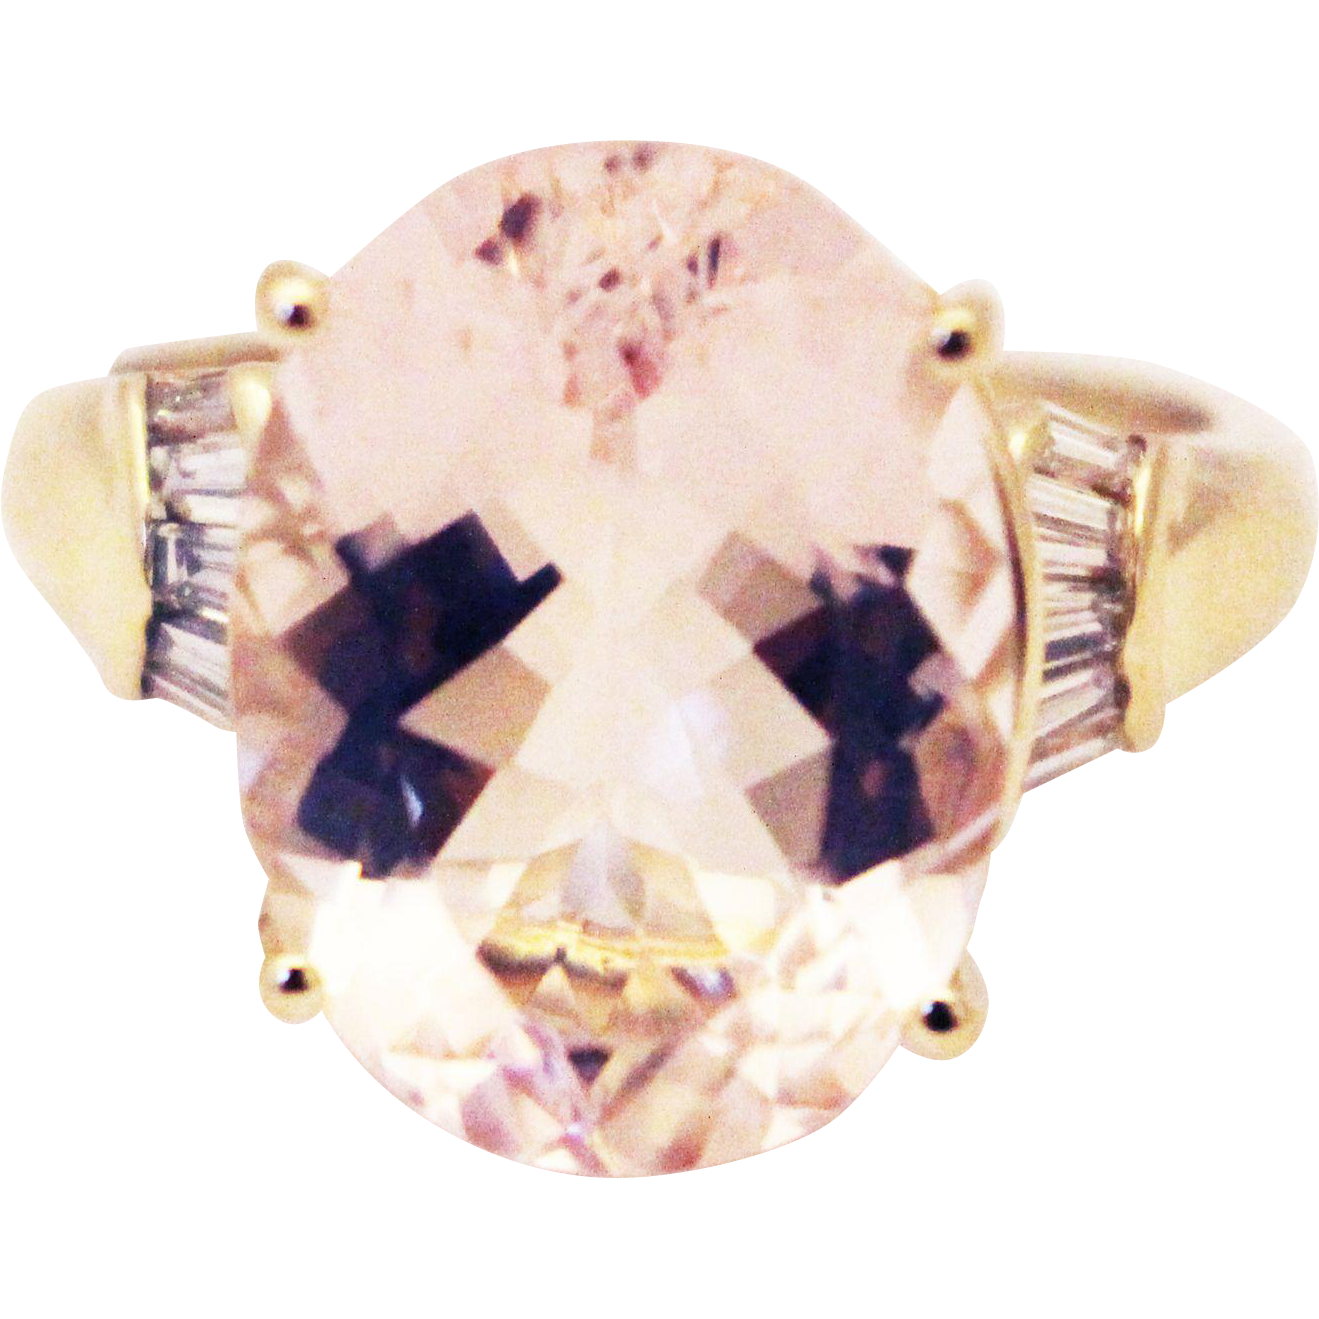 10 ct natural morganite diamonds ring 14kt yellow gold from samantha cham nyc on ruby lane. Black Bedroom Furniture Sets. Home Design Ideas